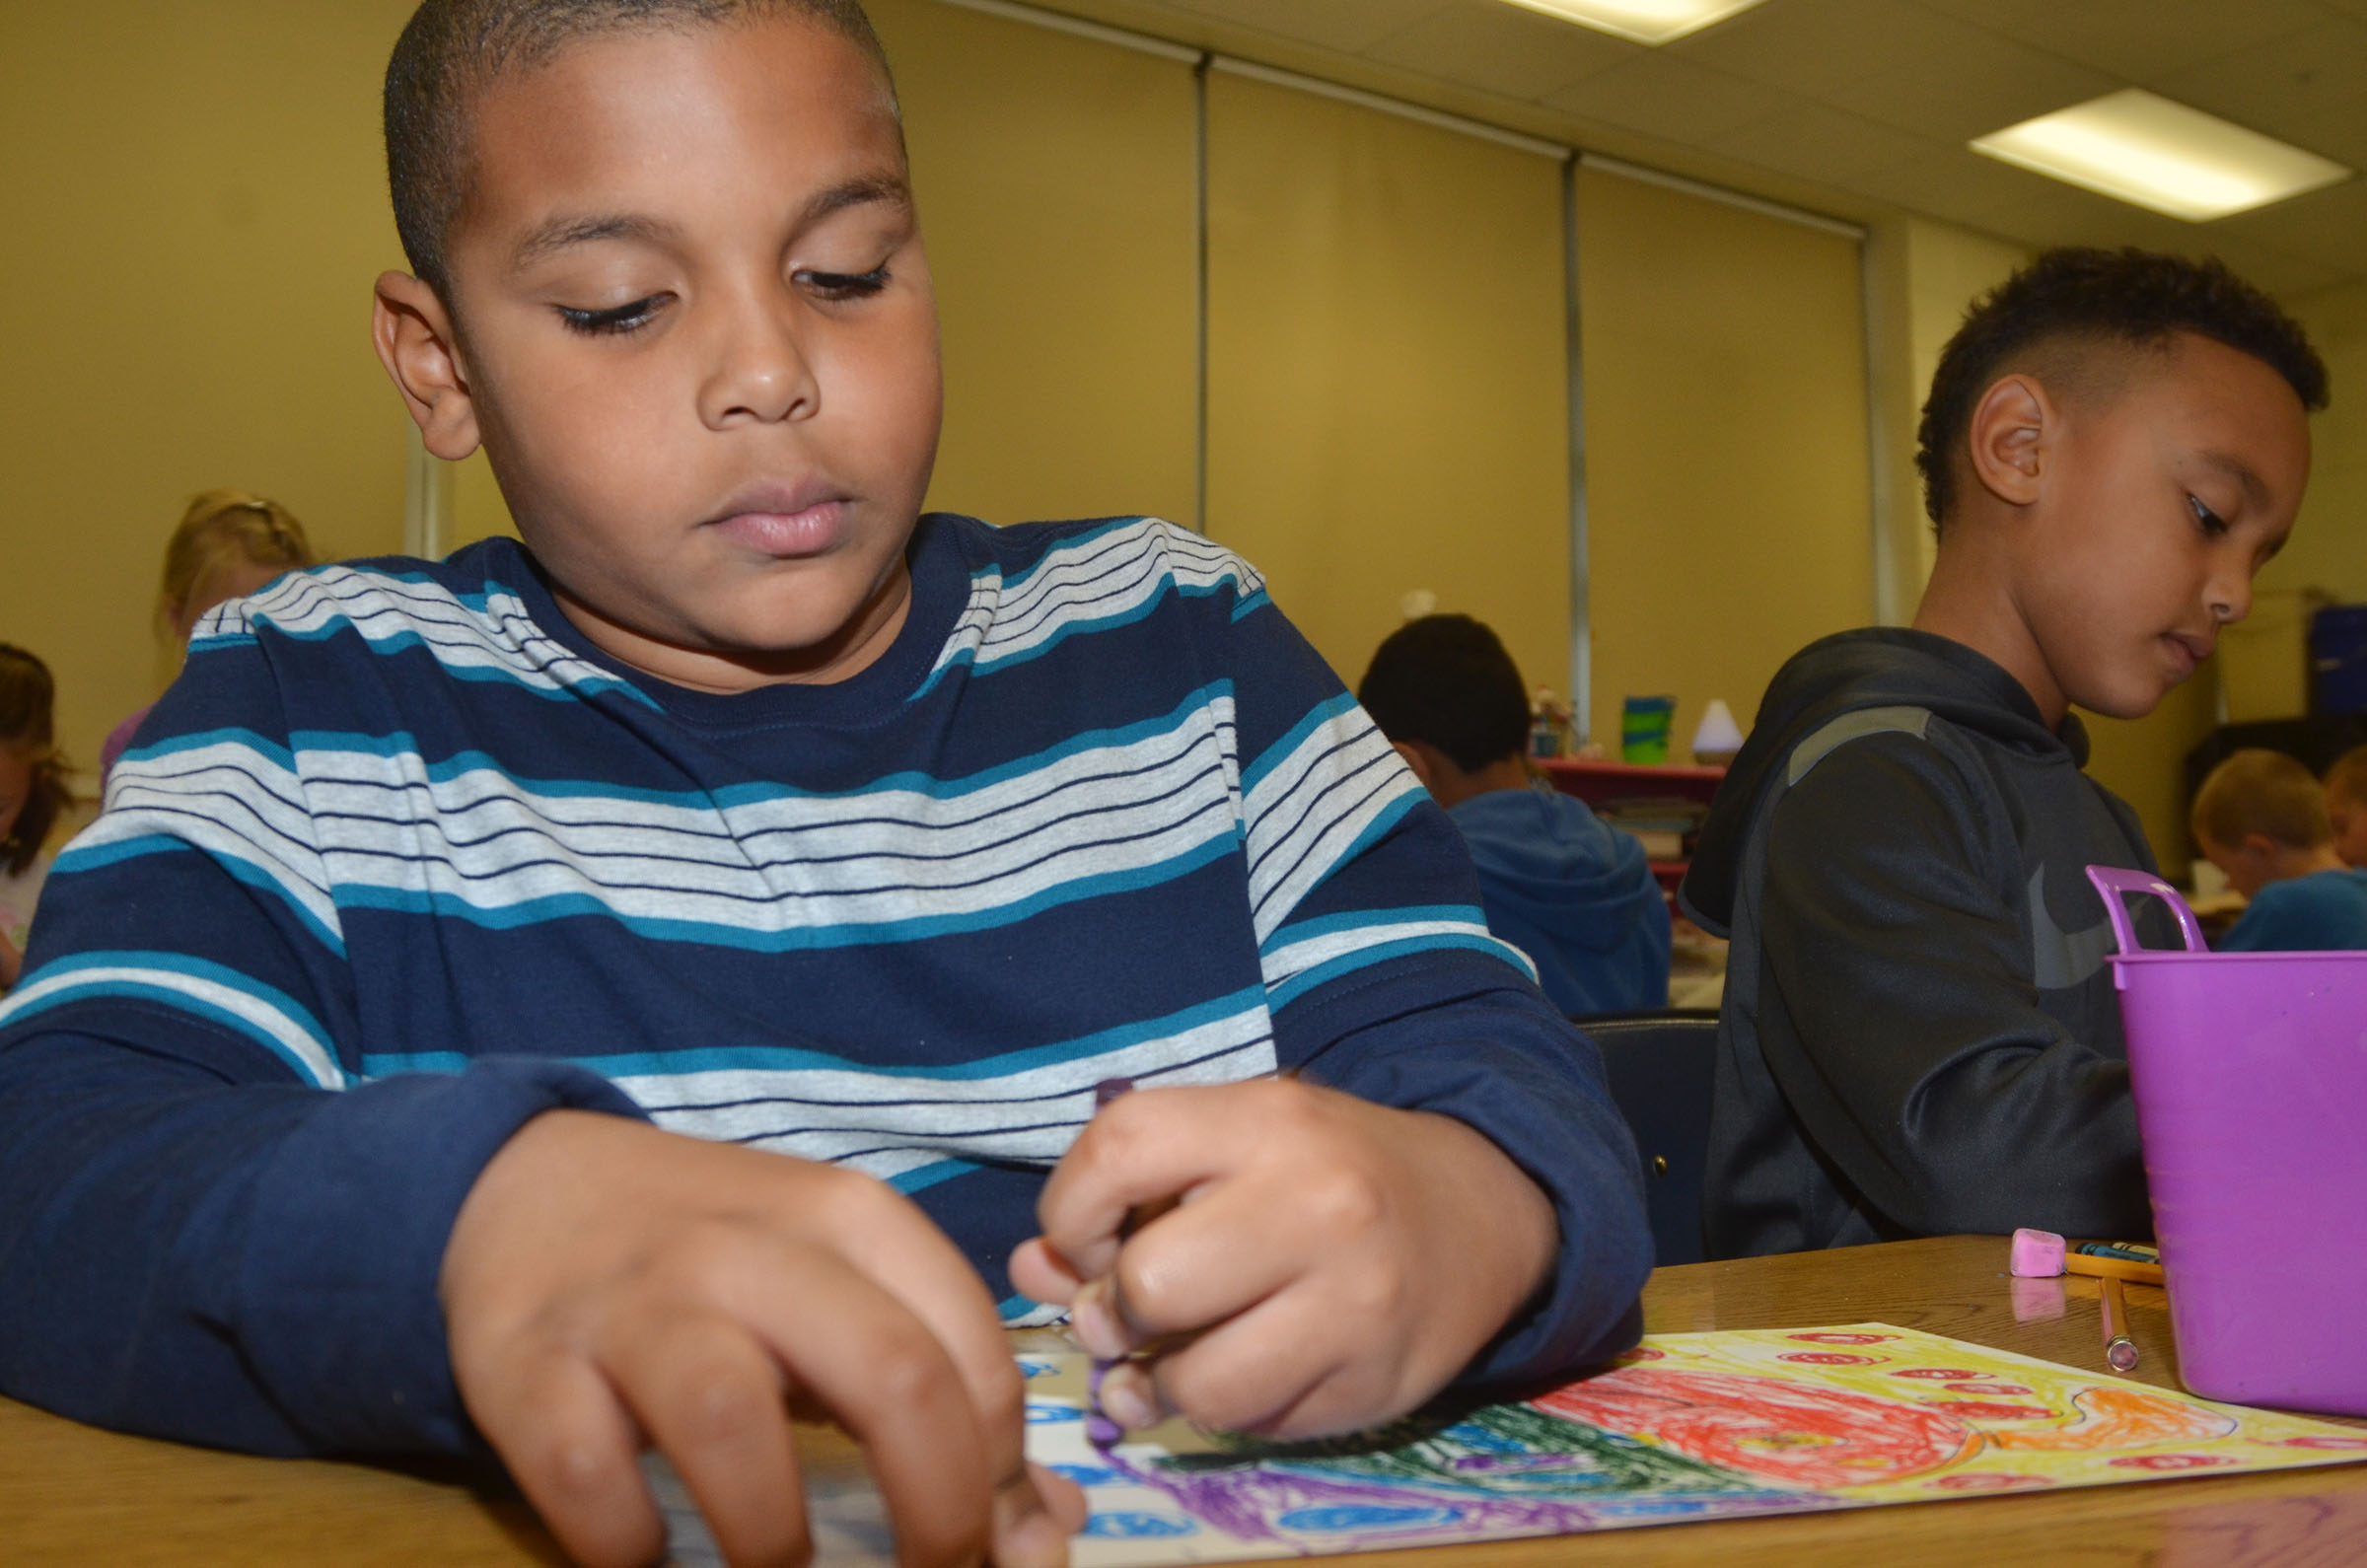 CES second-grader Zaemar Hoskins colors his warm and cool color face.